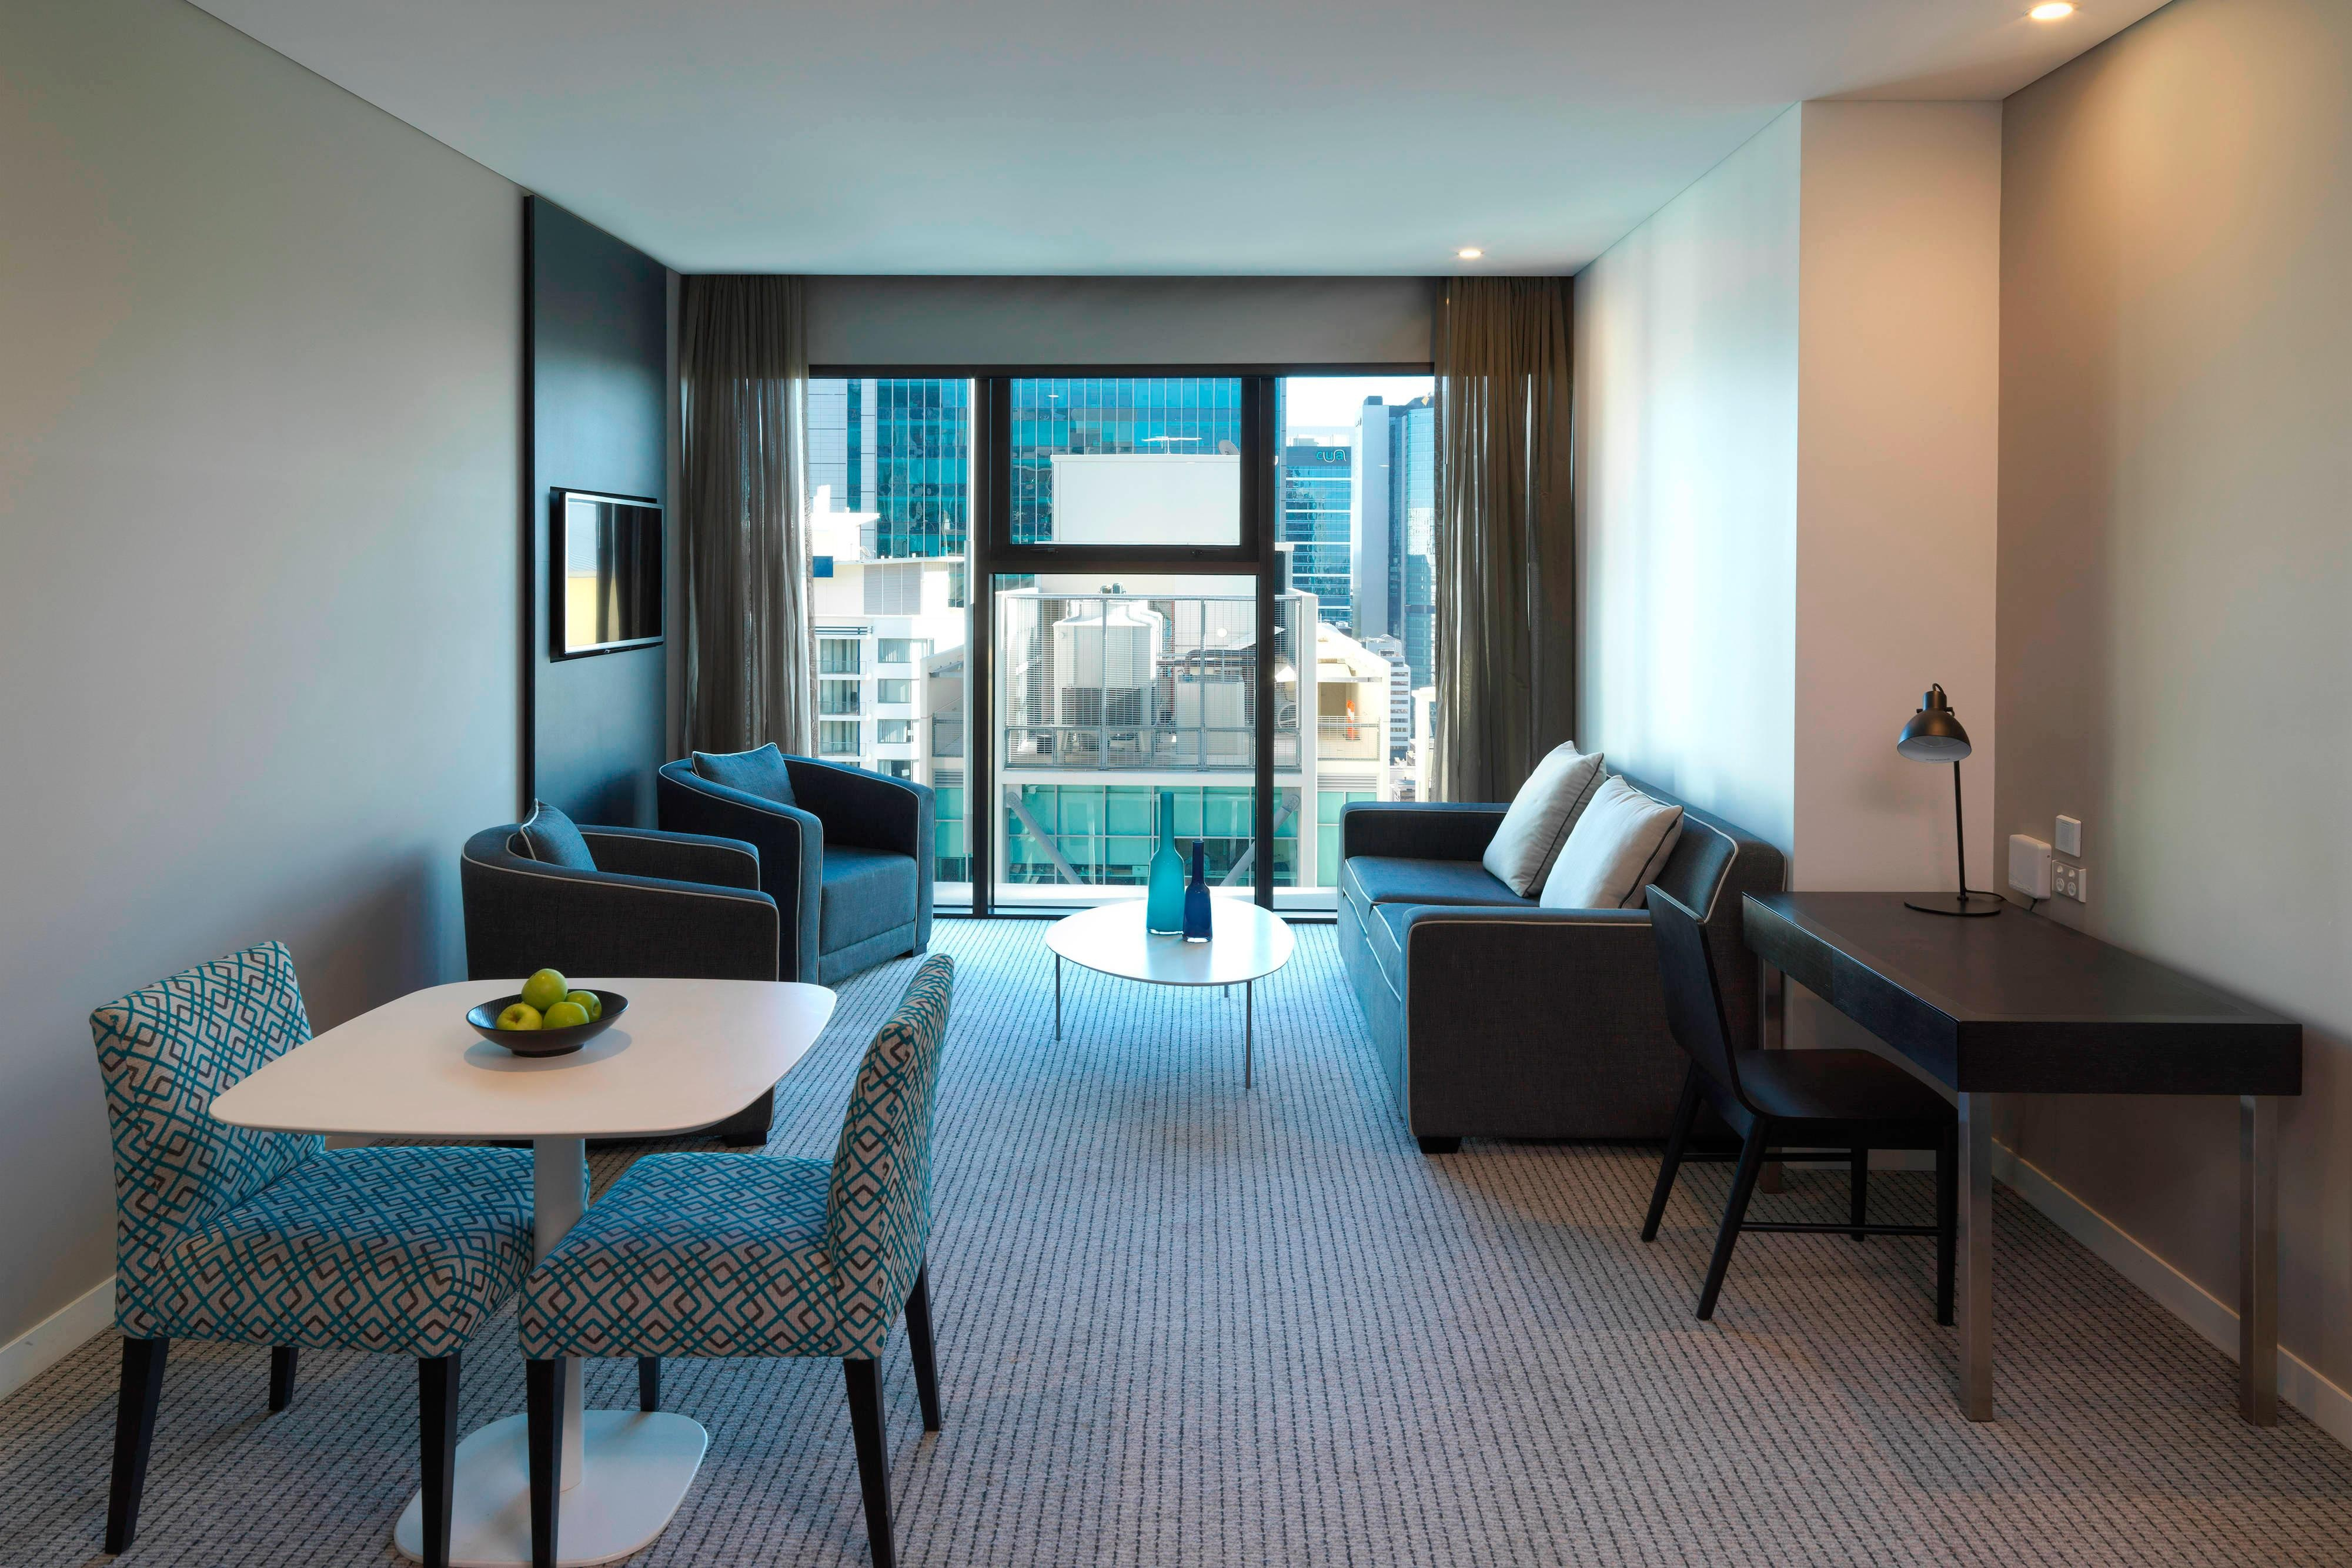 Hotel Rooms Amp Amenities Four Points By Sheraton Brisbane